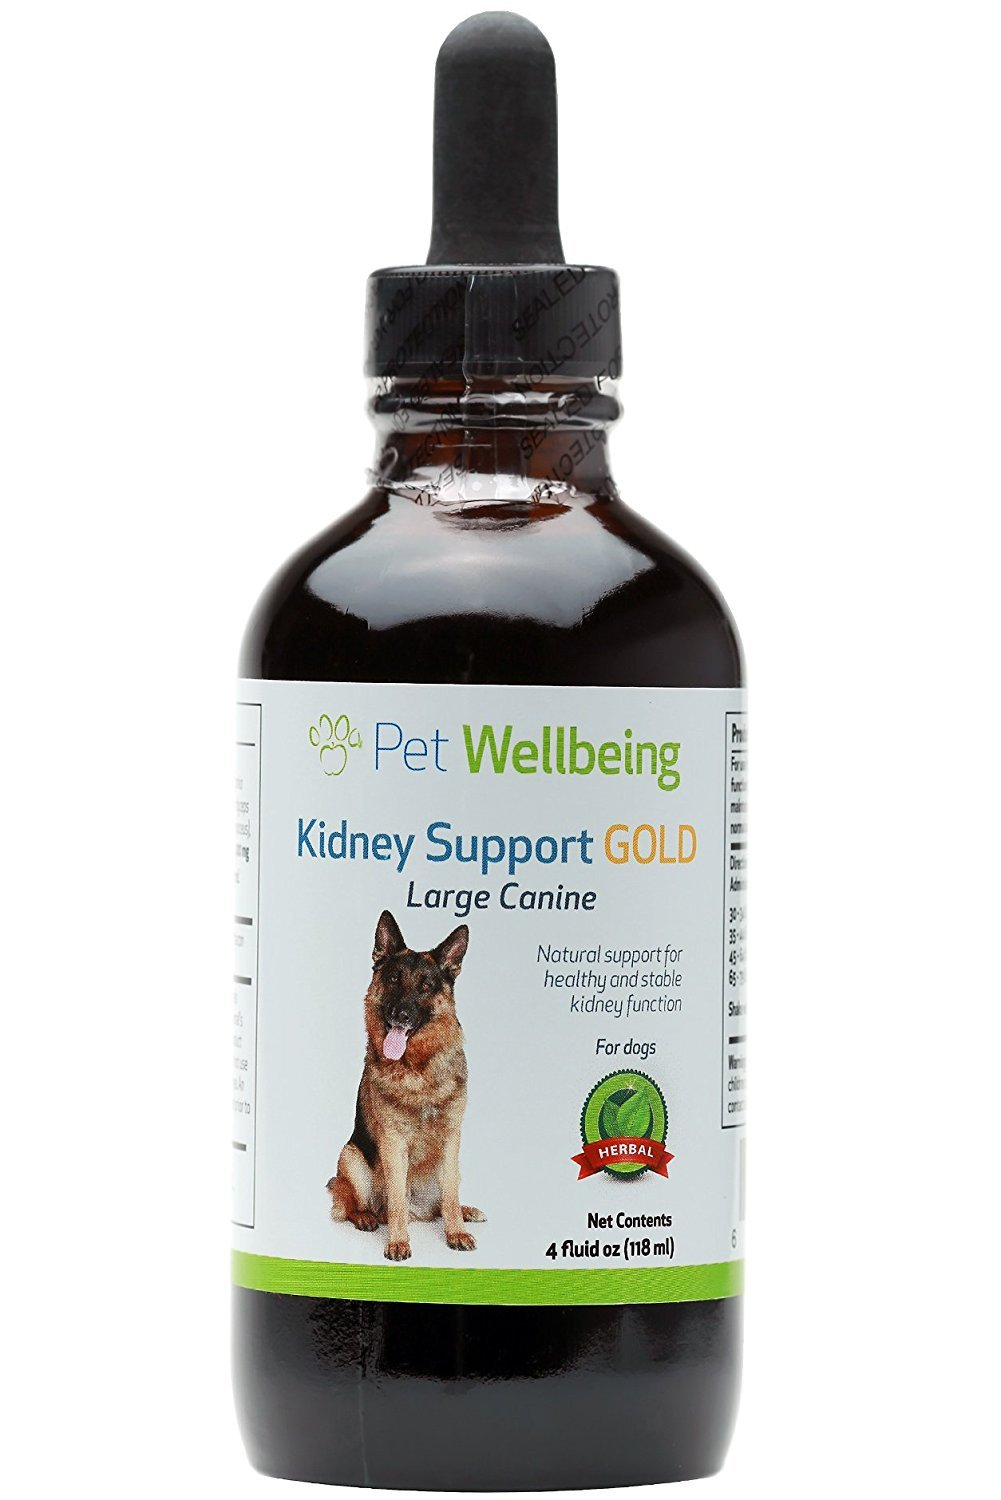 Pet Wellbeing - Kidney Support Gold for Dogs - Natural Support for Canine Kidney Health (4 Ounce)